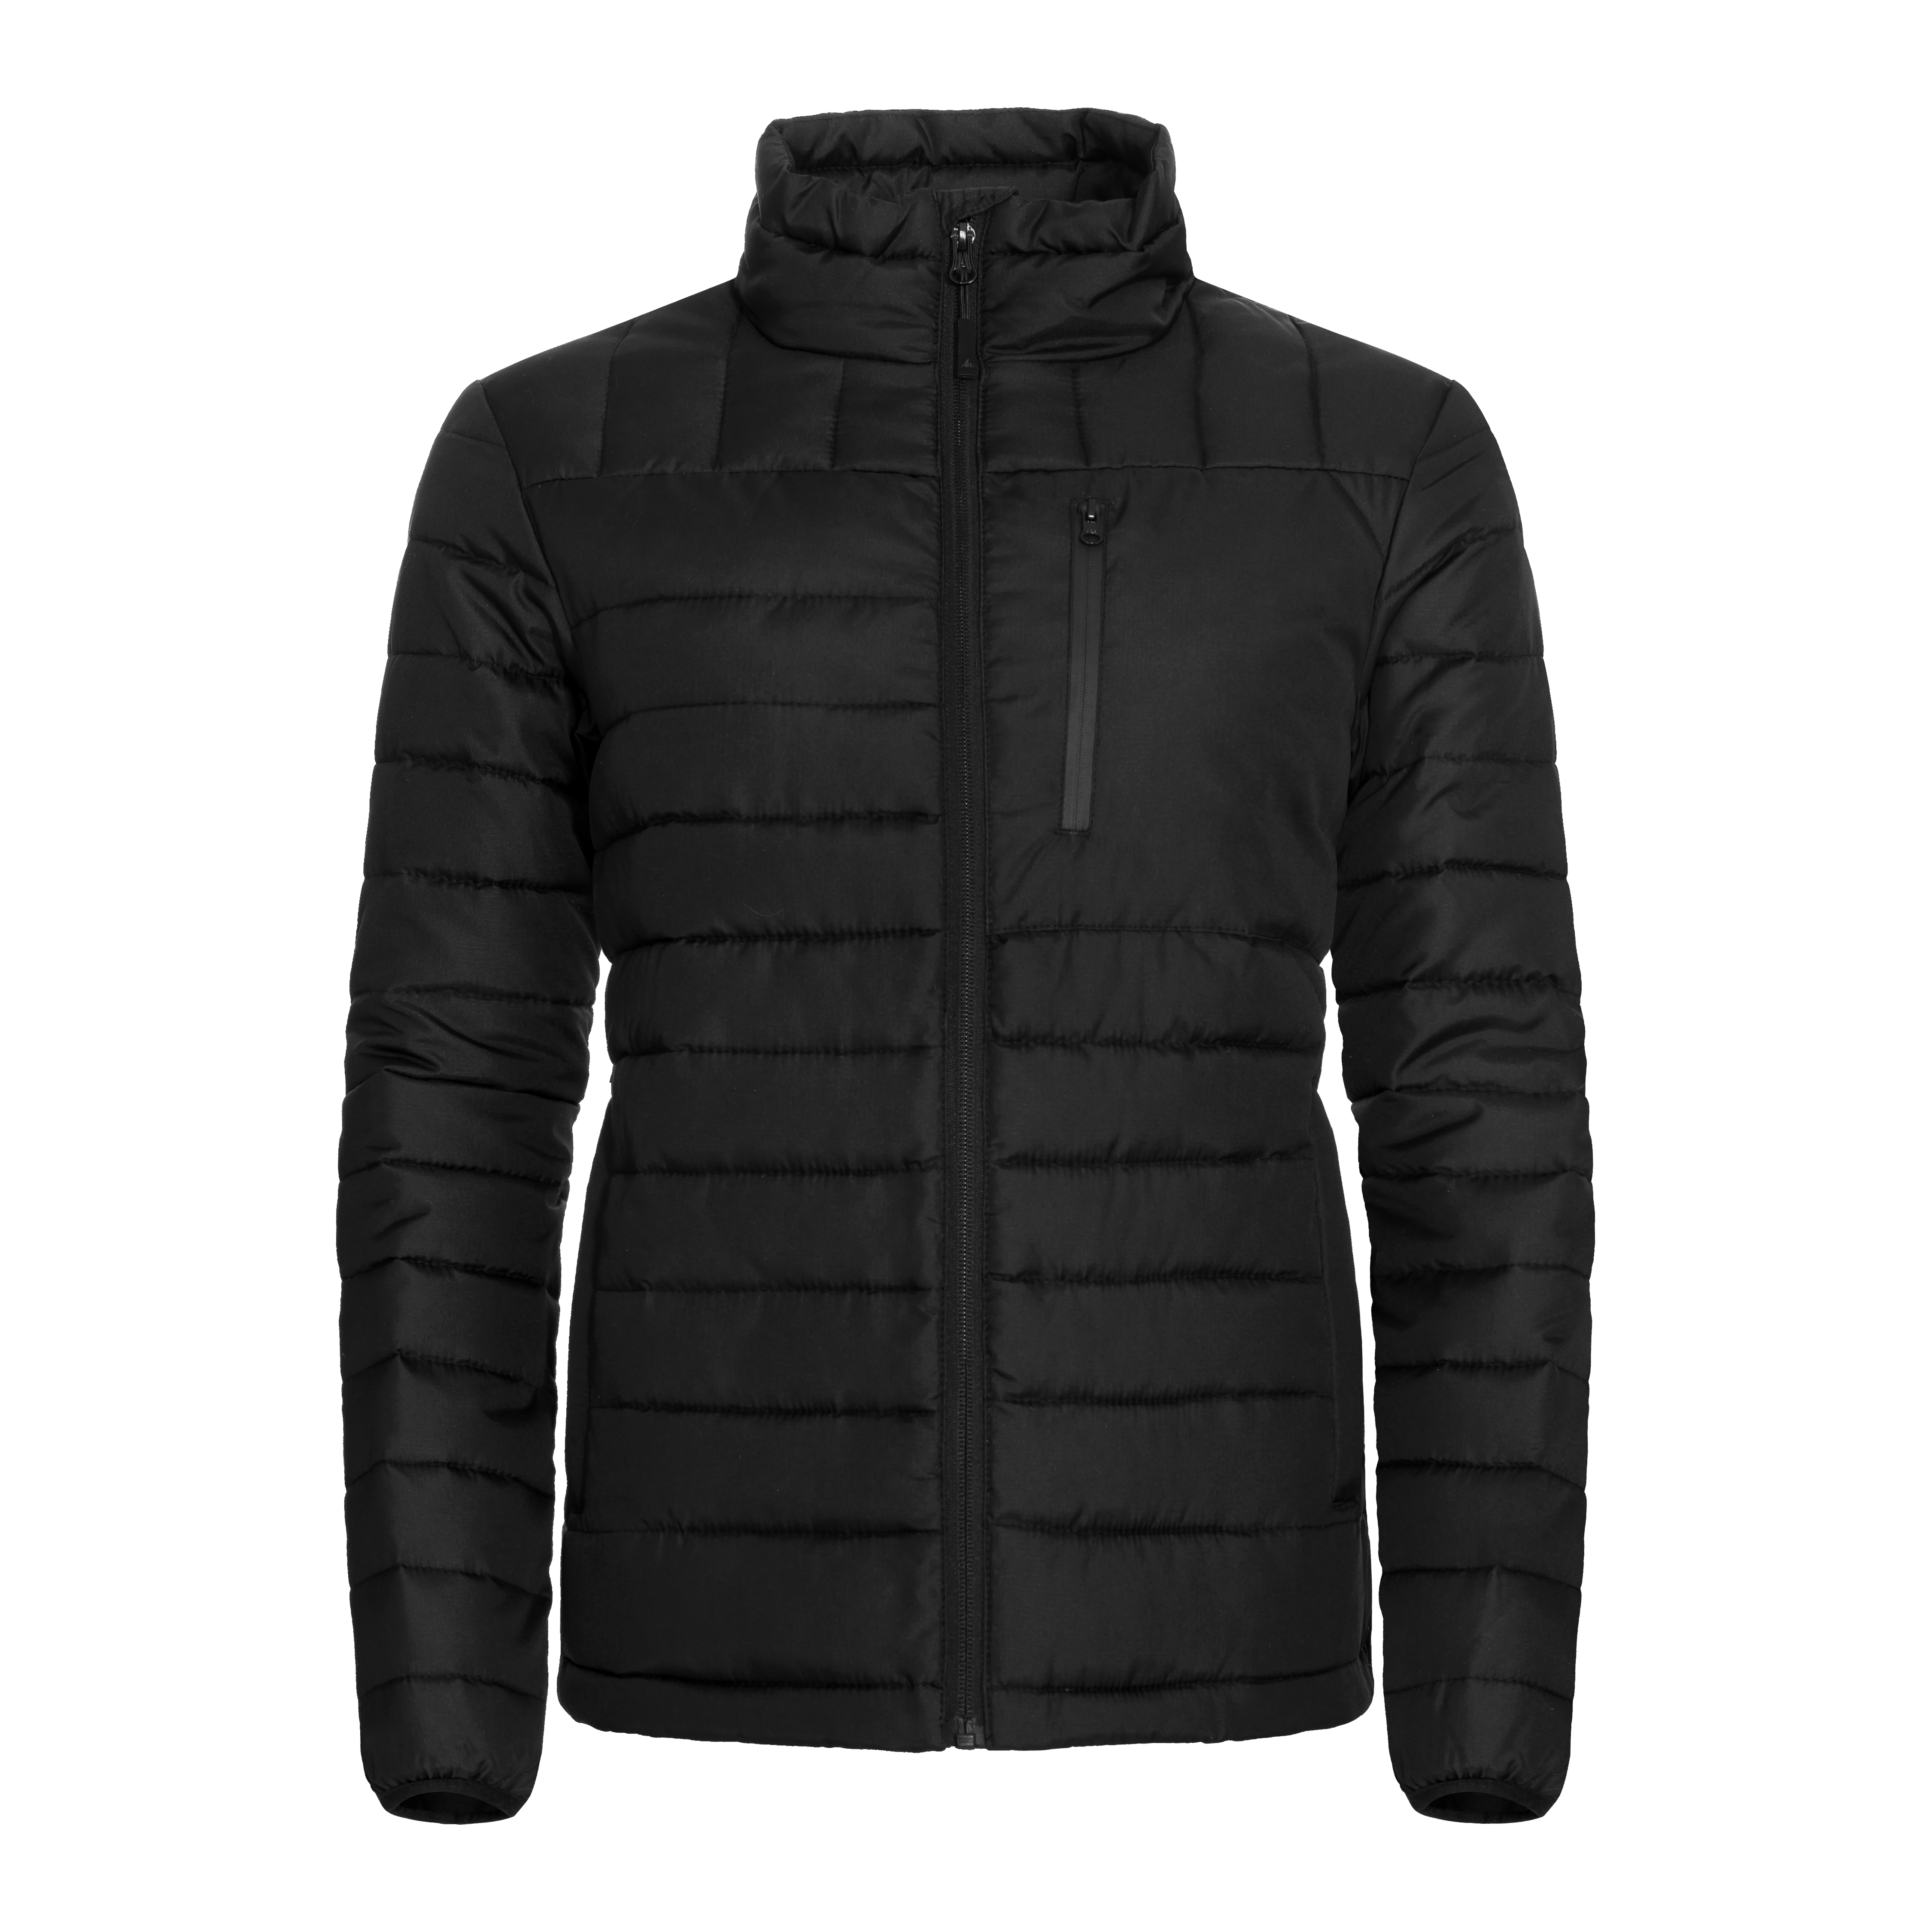 MH-226D Recycle Quilted Jacket Ladies